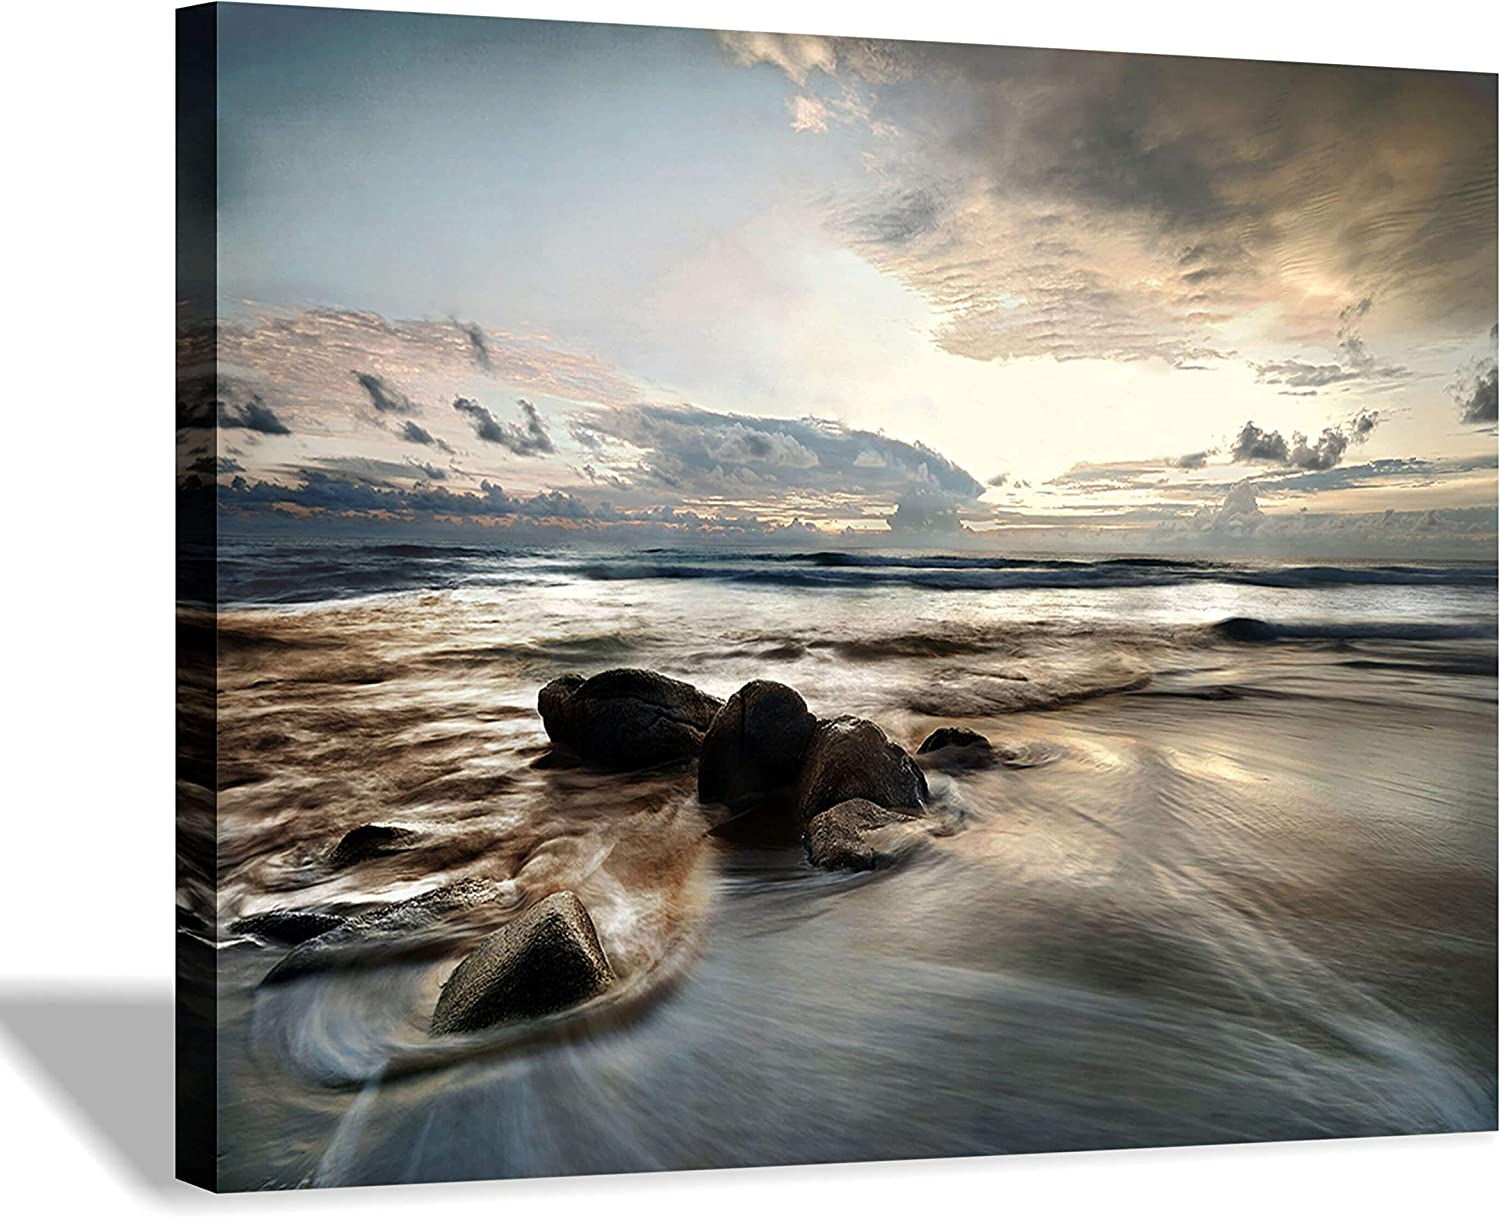 Beach Picture Canvas Wall Art: Rocky Wave Artwork Sunset Painting Seascape Print for Office (16'' x 12'' x 1 Panel)